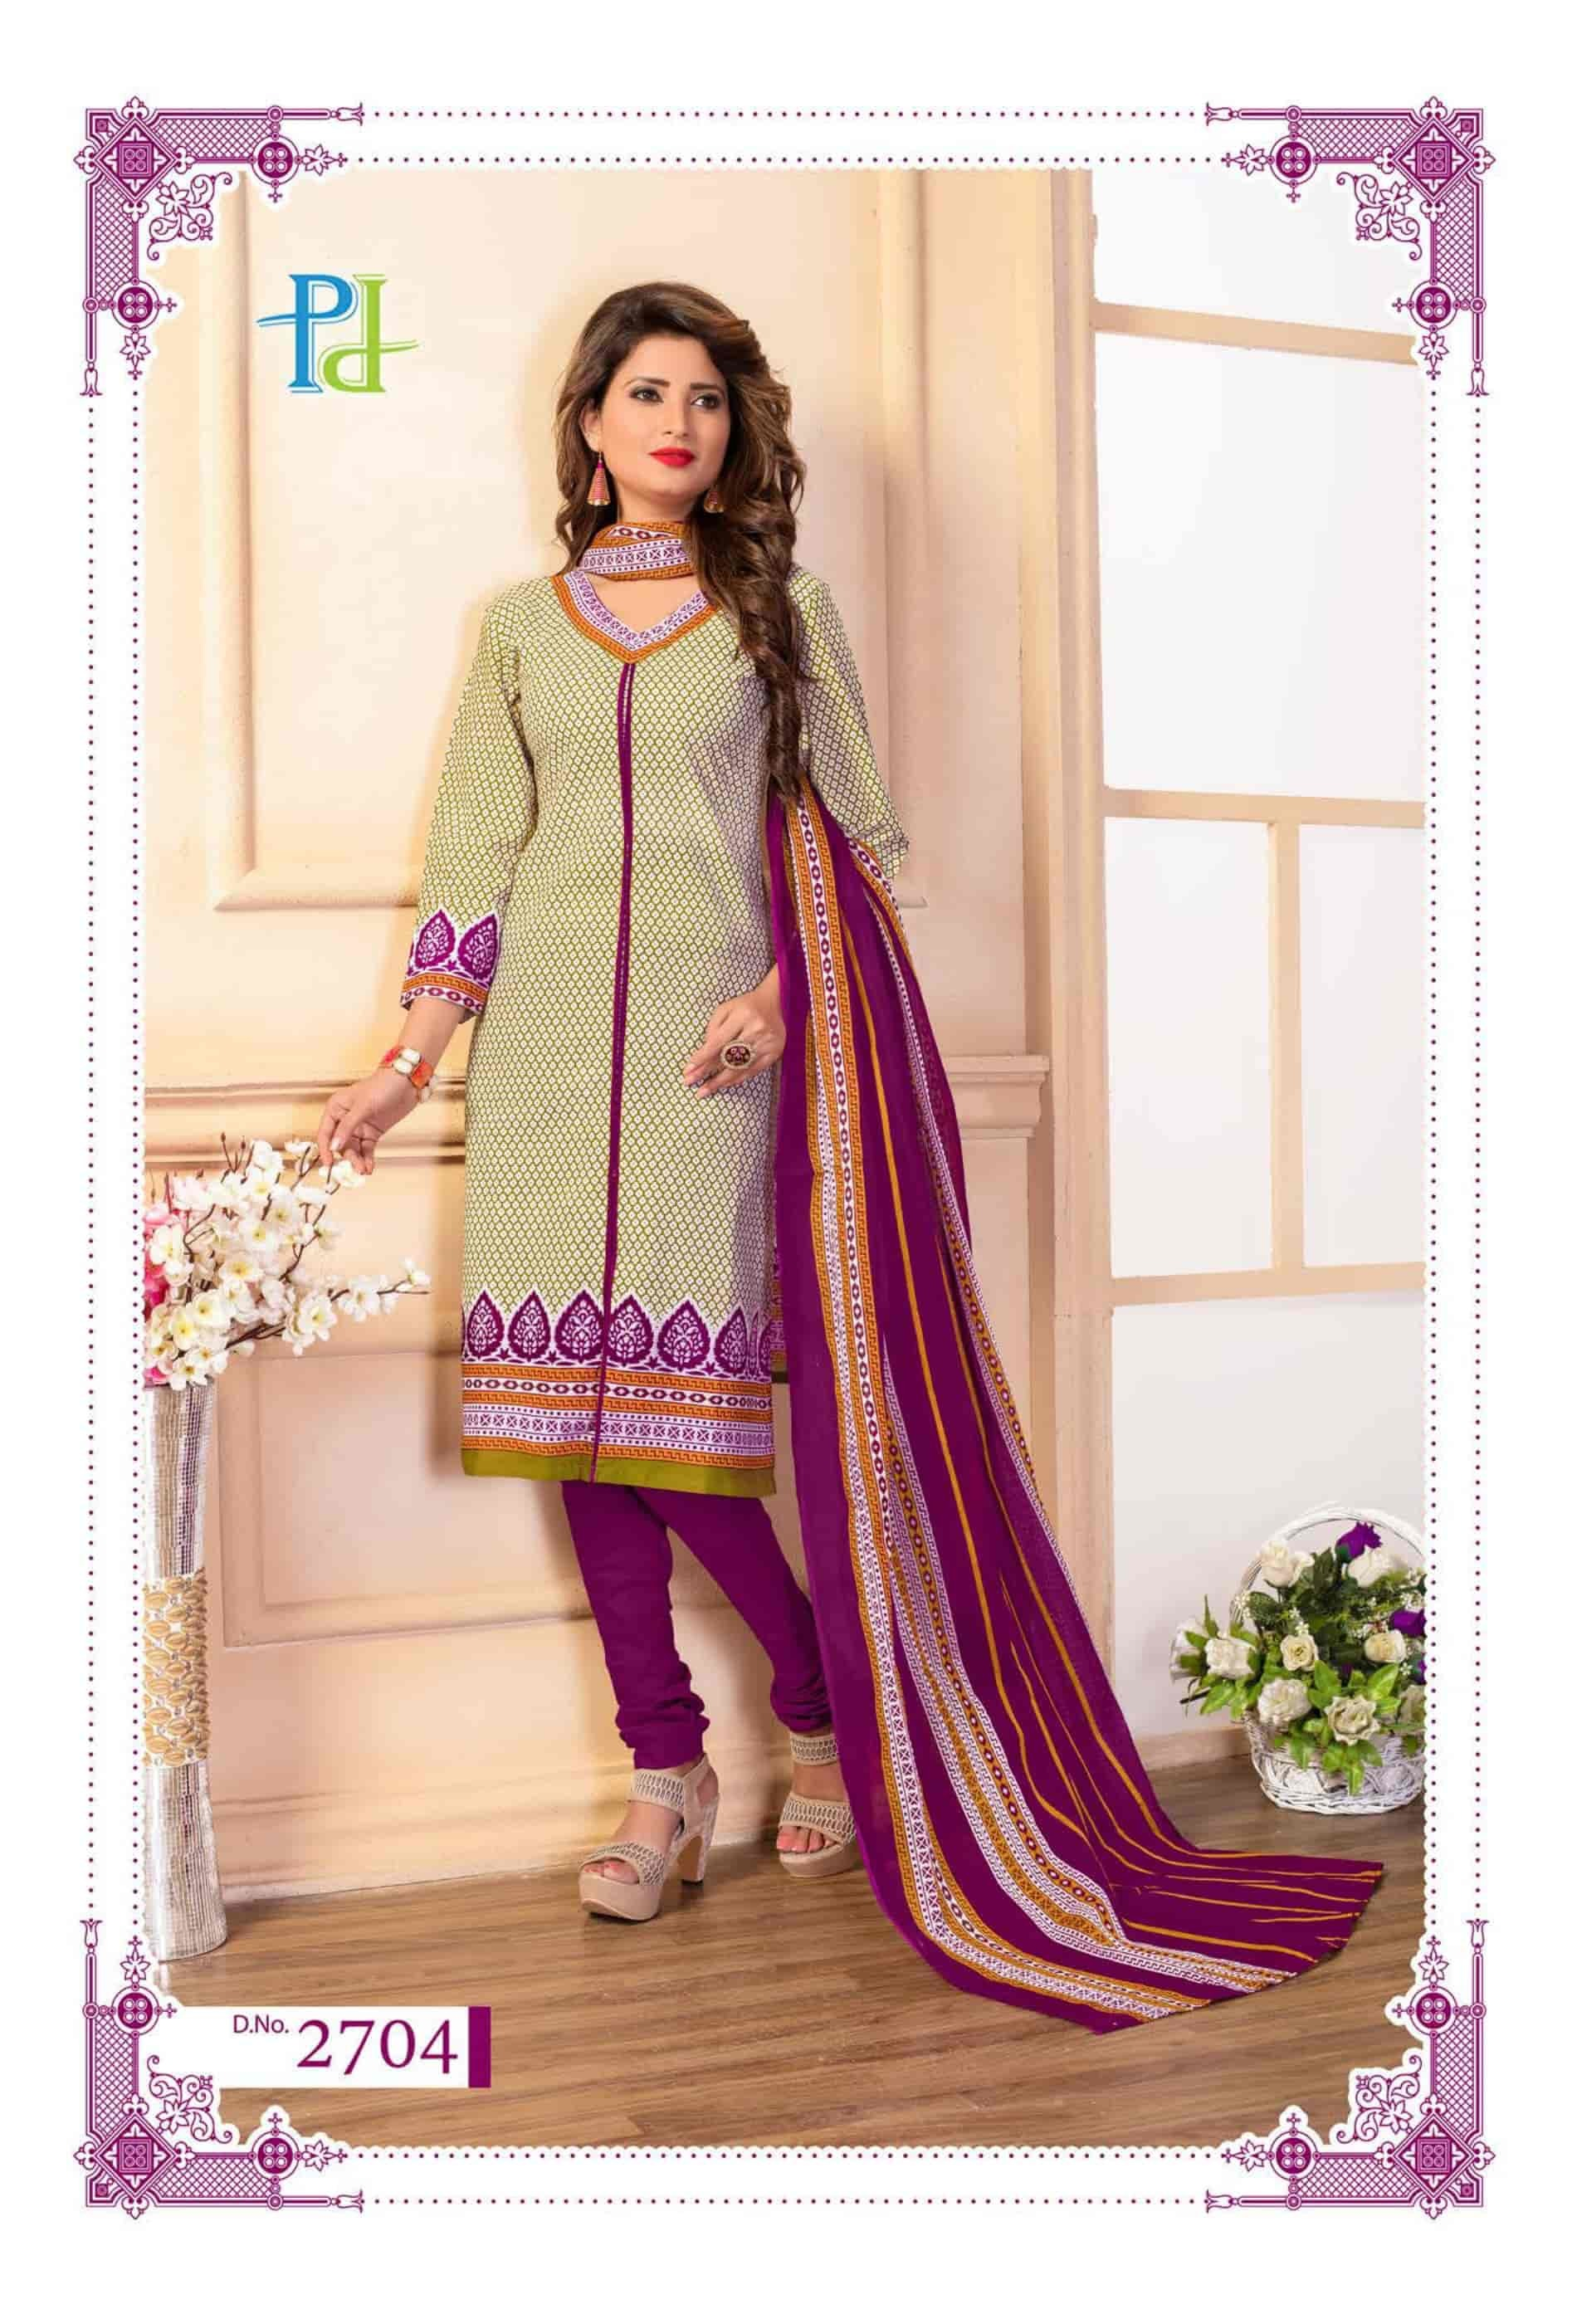 a957dbcaa6 COTTON FANCY PRINTED SALWAR SUITS - COTTON FANCY PRINTED SALWAR ...